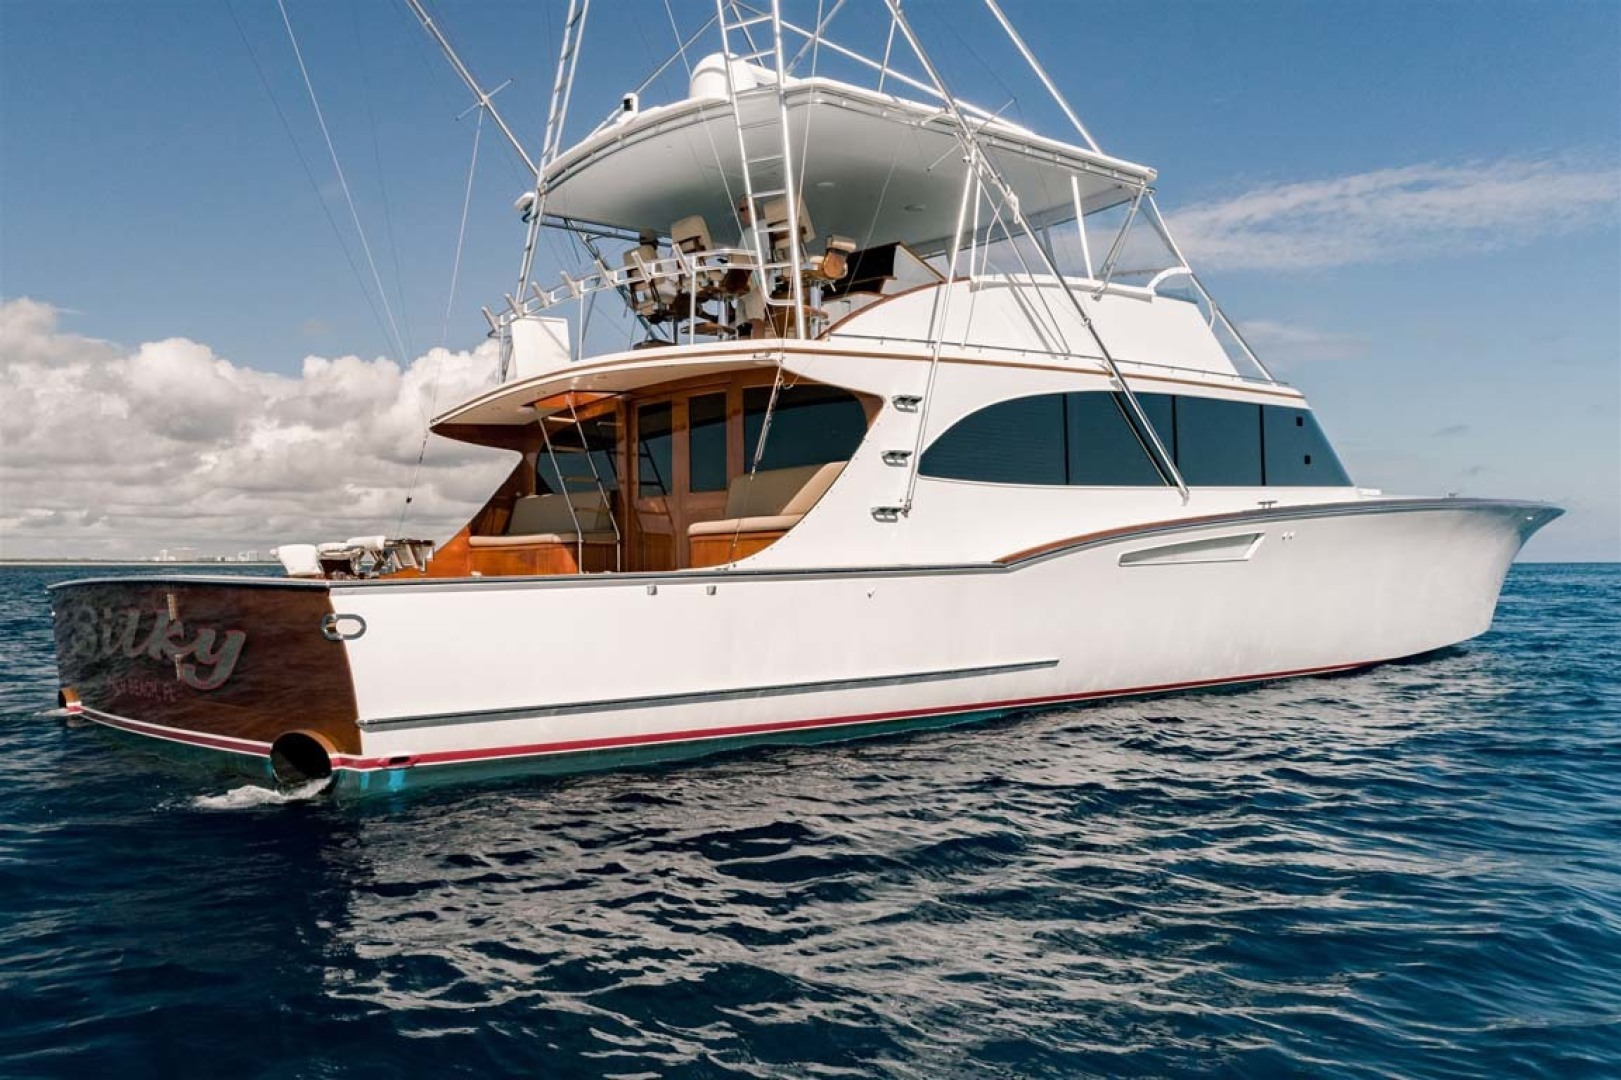 Jim Smith-Convertible 2006-Silky North Palm Beach-Florida-United States-Starboard Aft Quarter-1517060 | Thumbnail